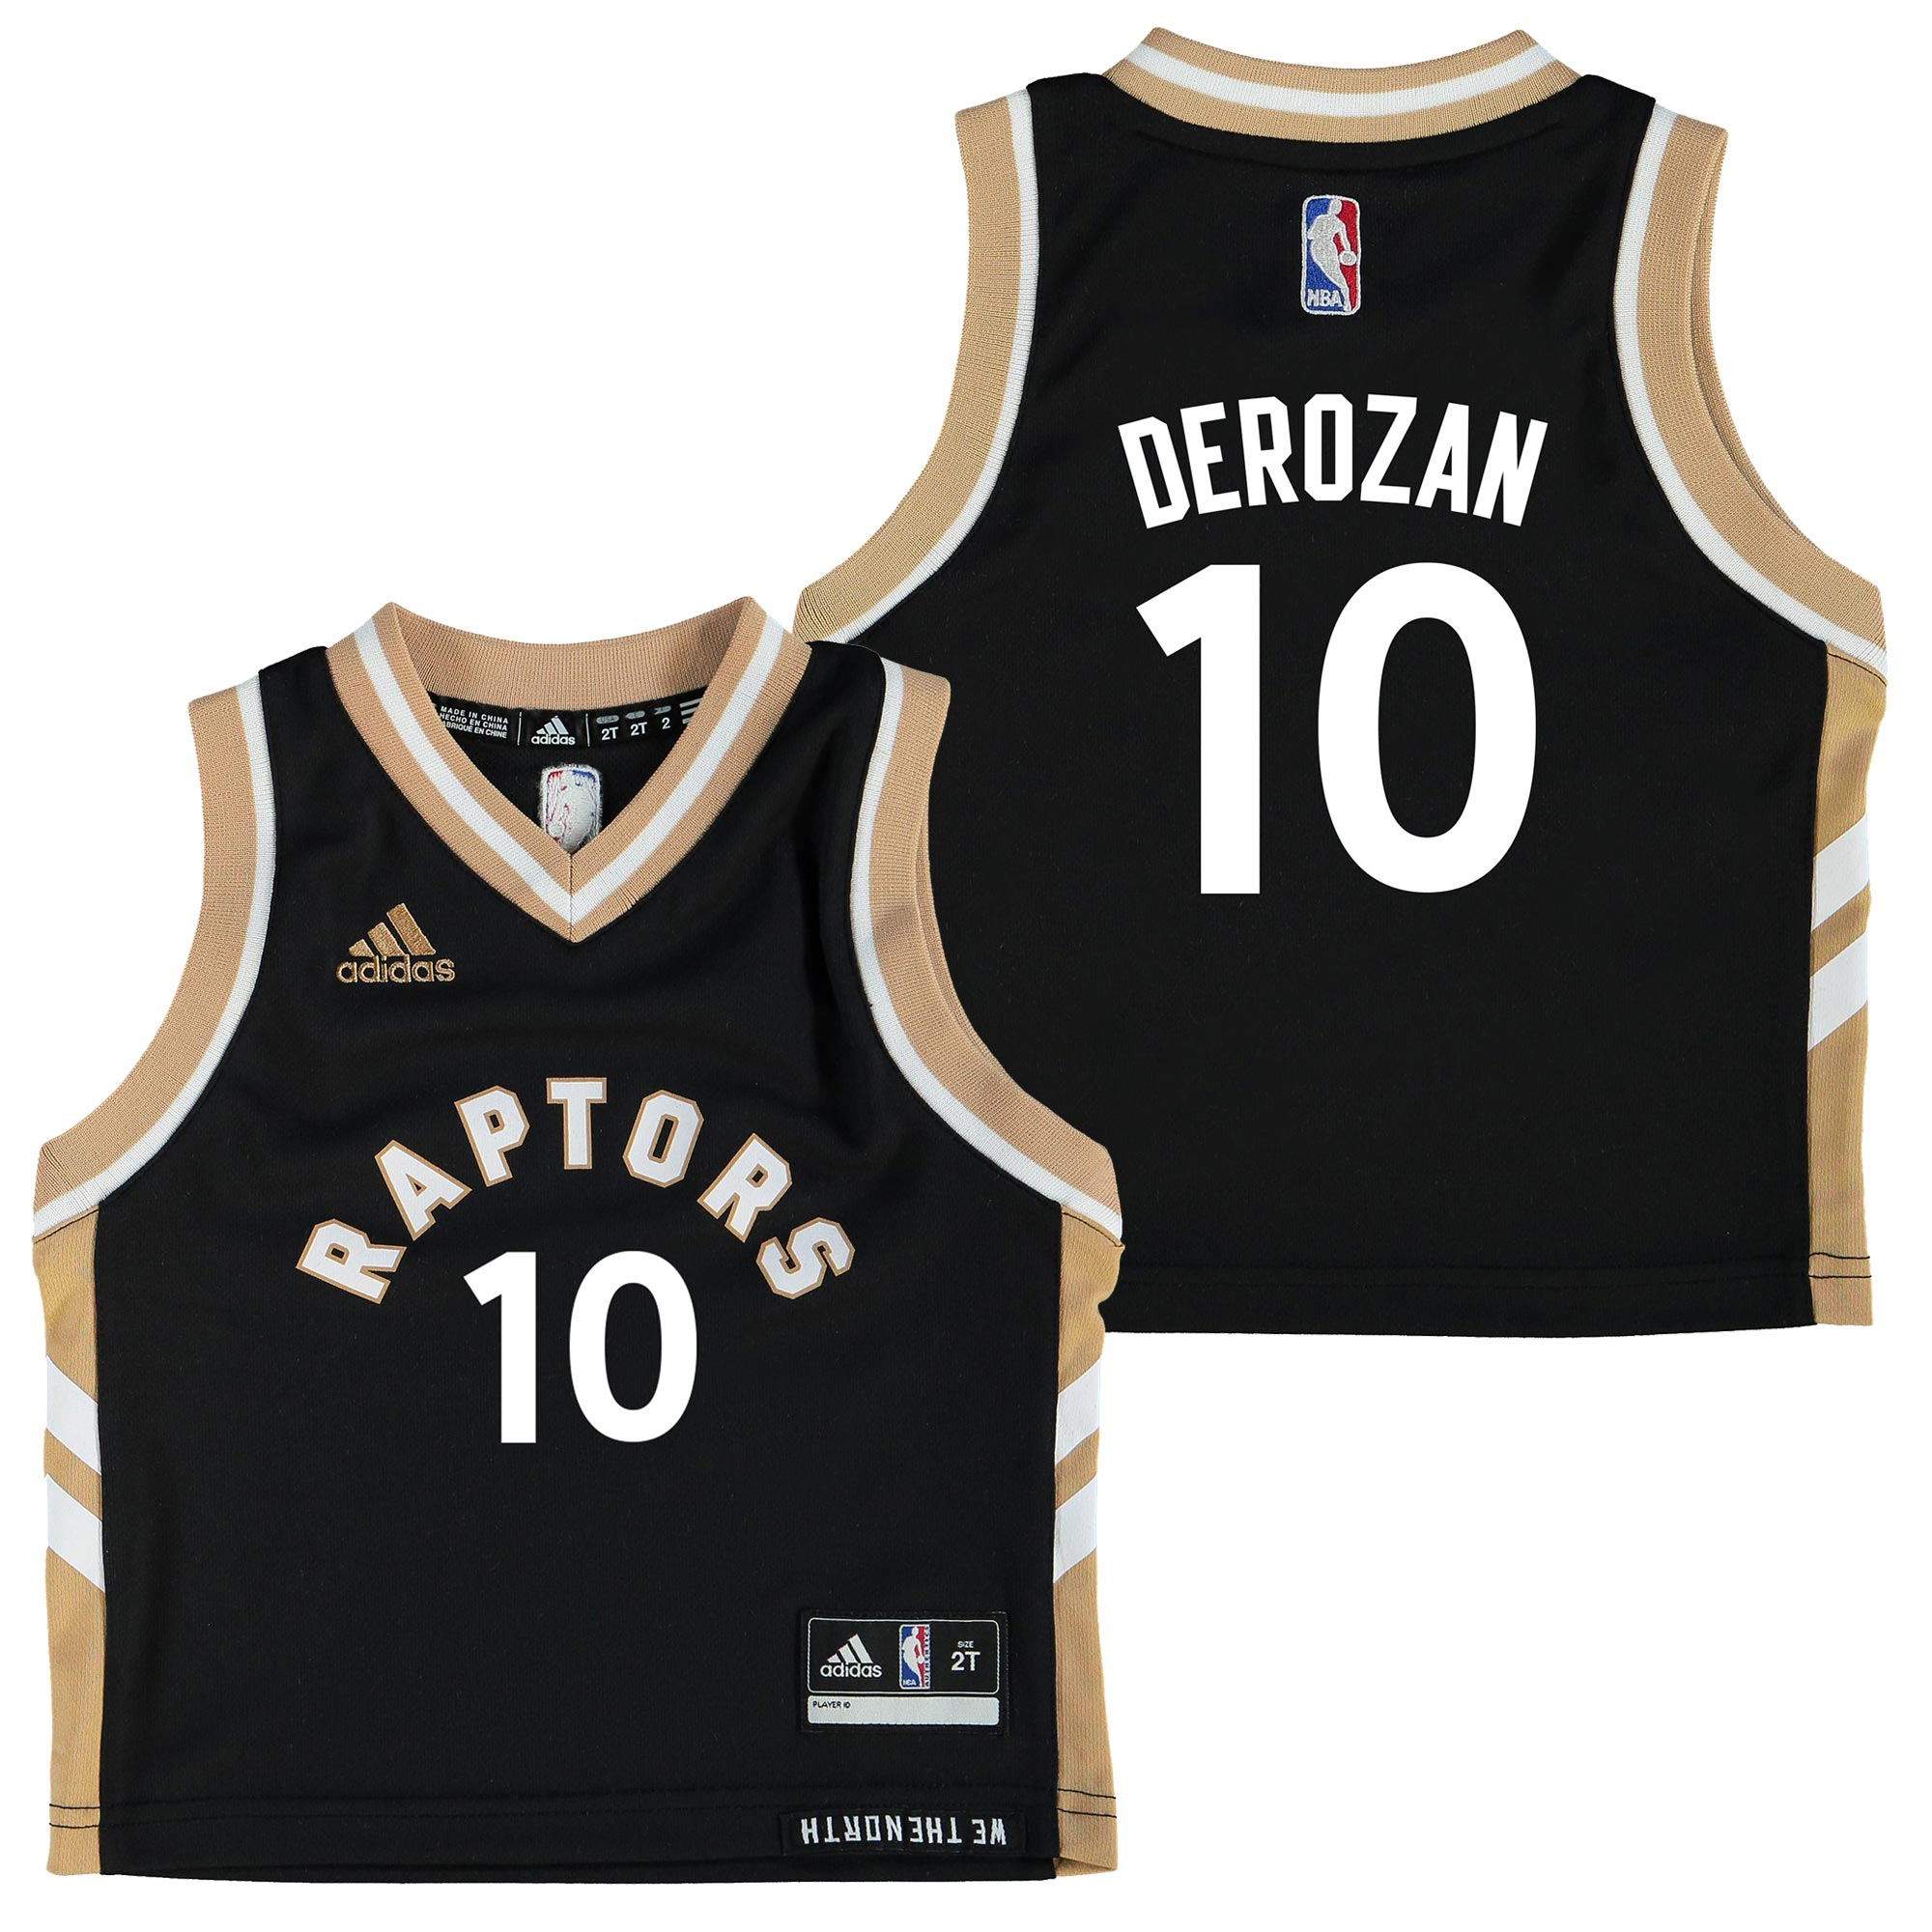 Toronto Raptors Secondary Road Alternate Replica Jersey - DeMar DeRoza